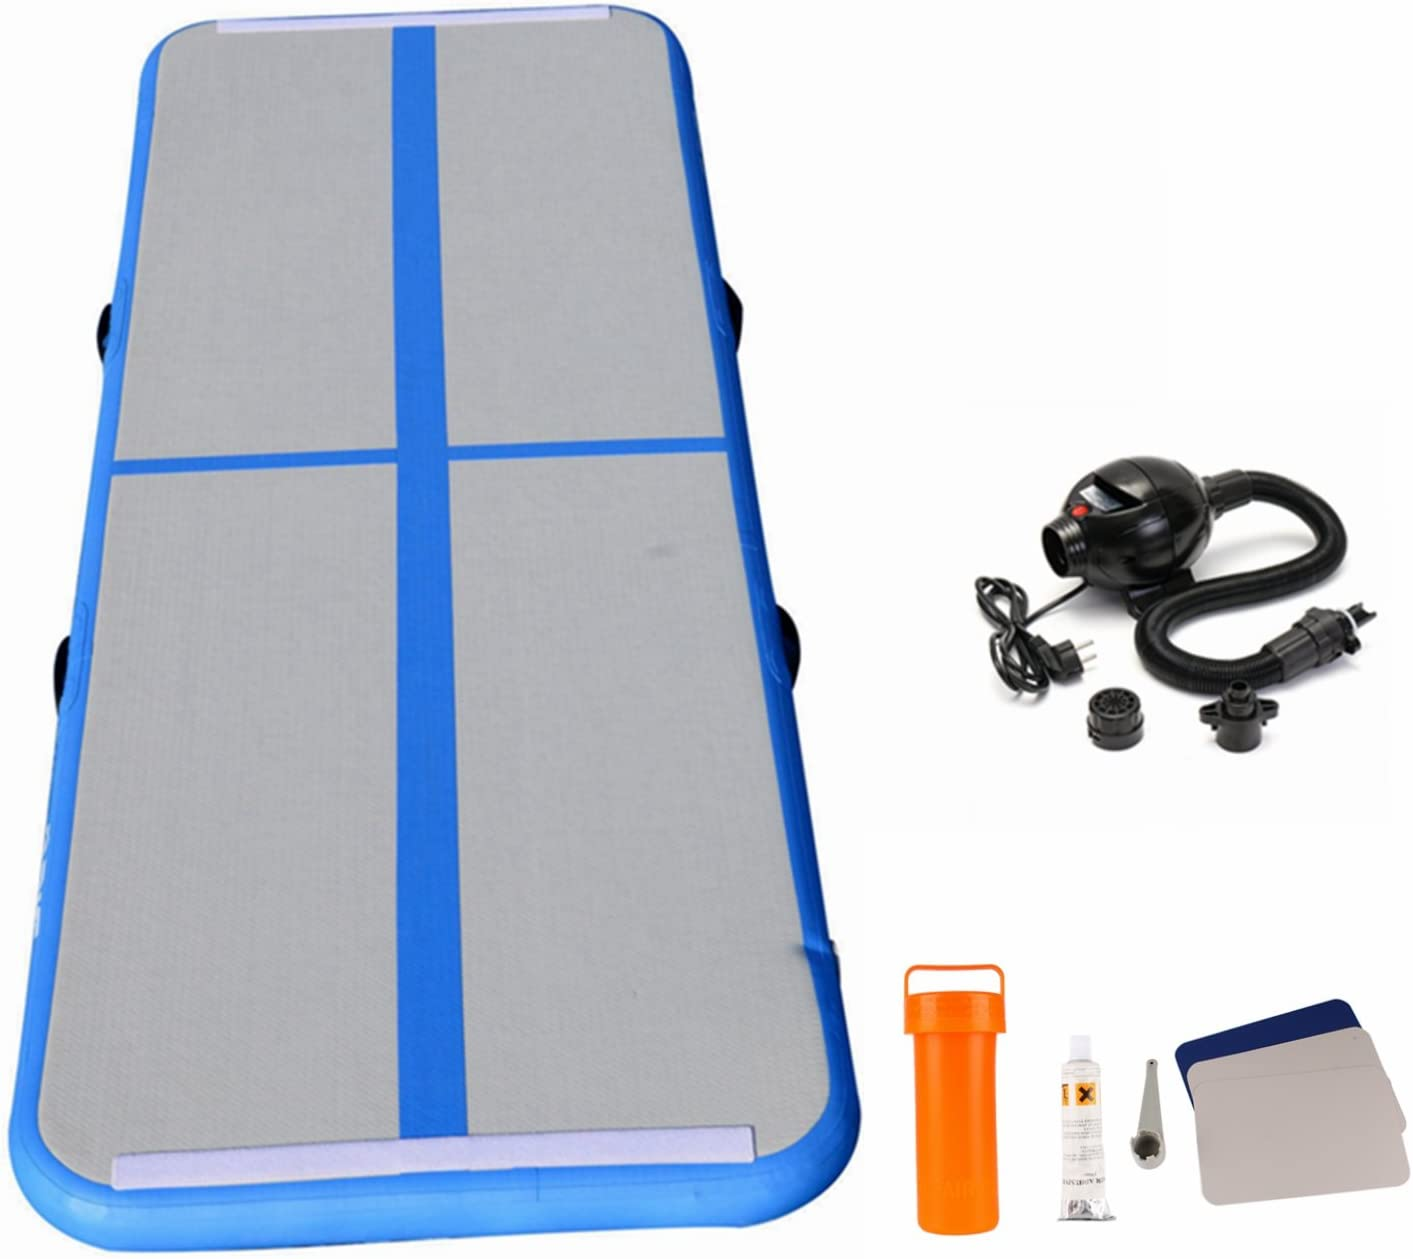 RameyStore Inflatable Gymnastics Tumbling Mat Air Floor Floating Boat for Home Use, Cheerleading, Beach, Park and Water